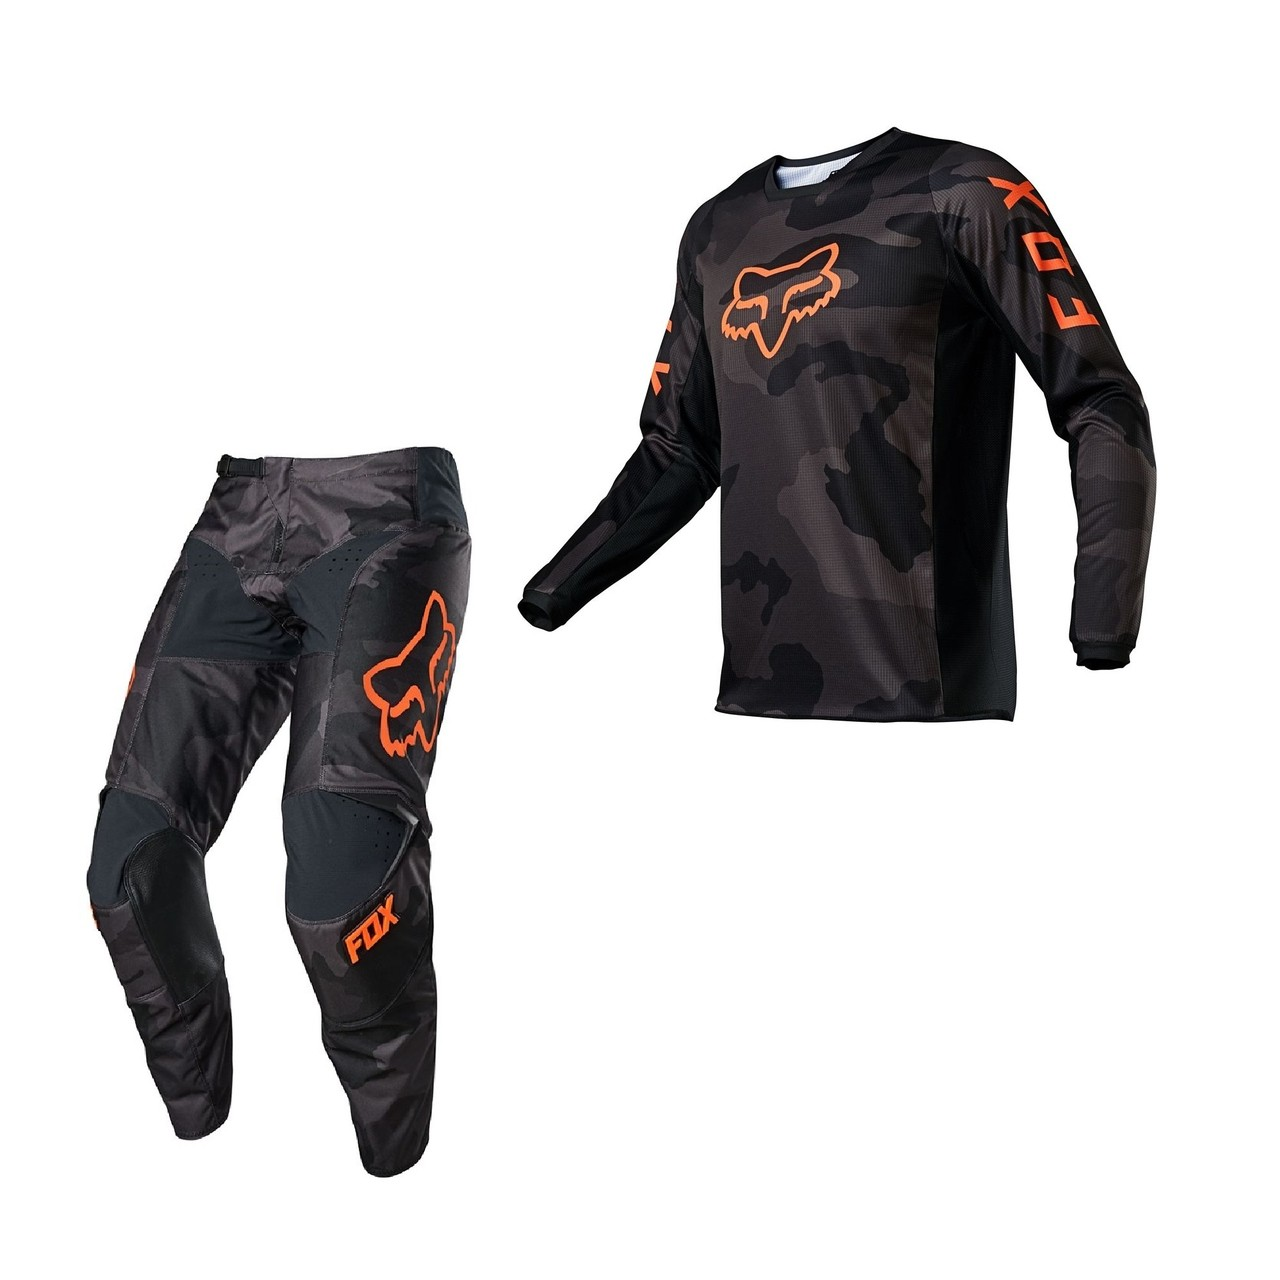 Kit Calça + Camisa FOX 180 Trev Black Camo